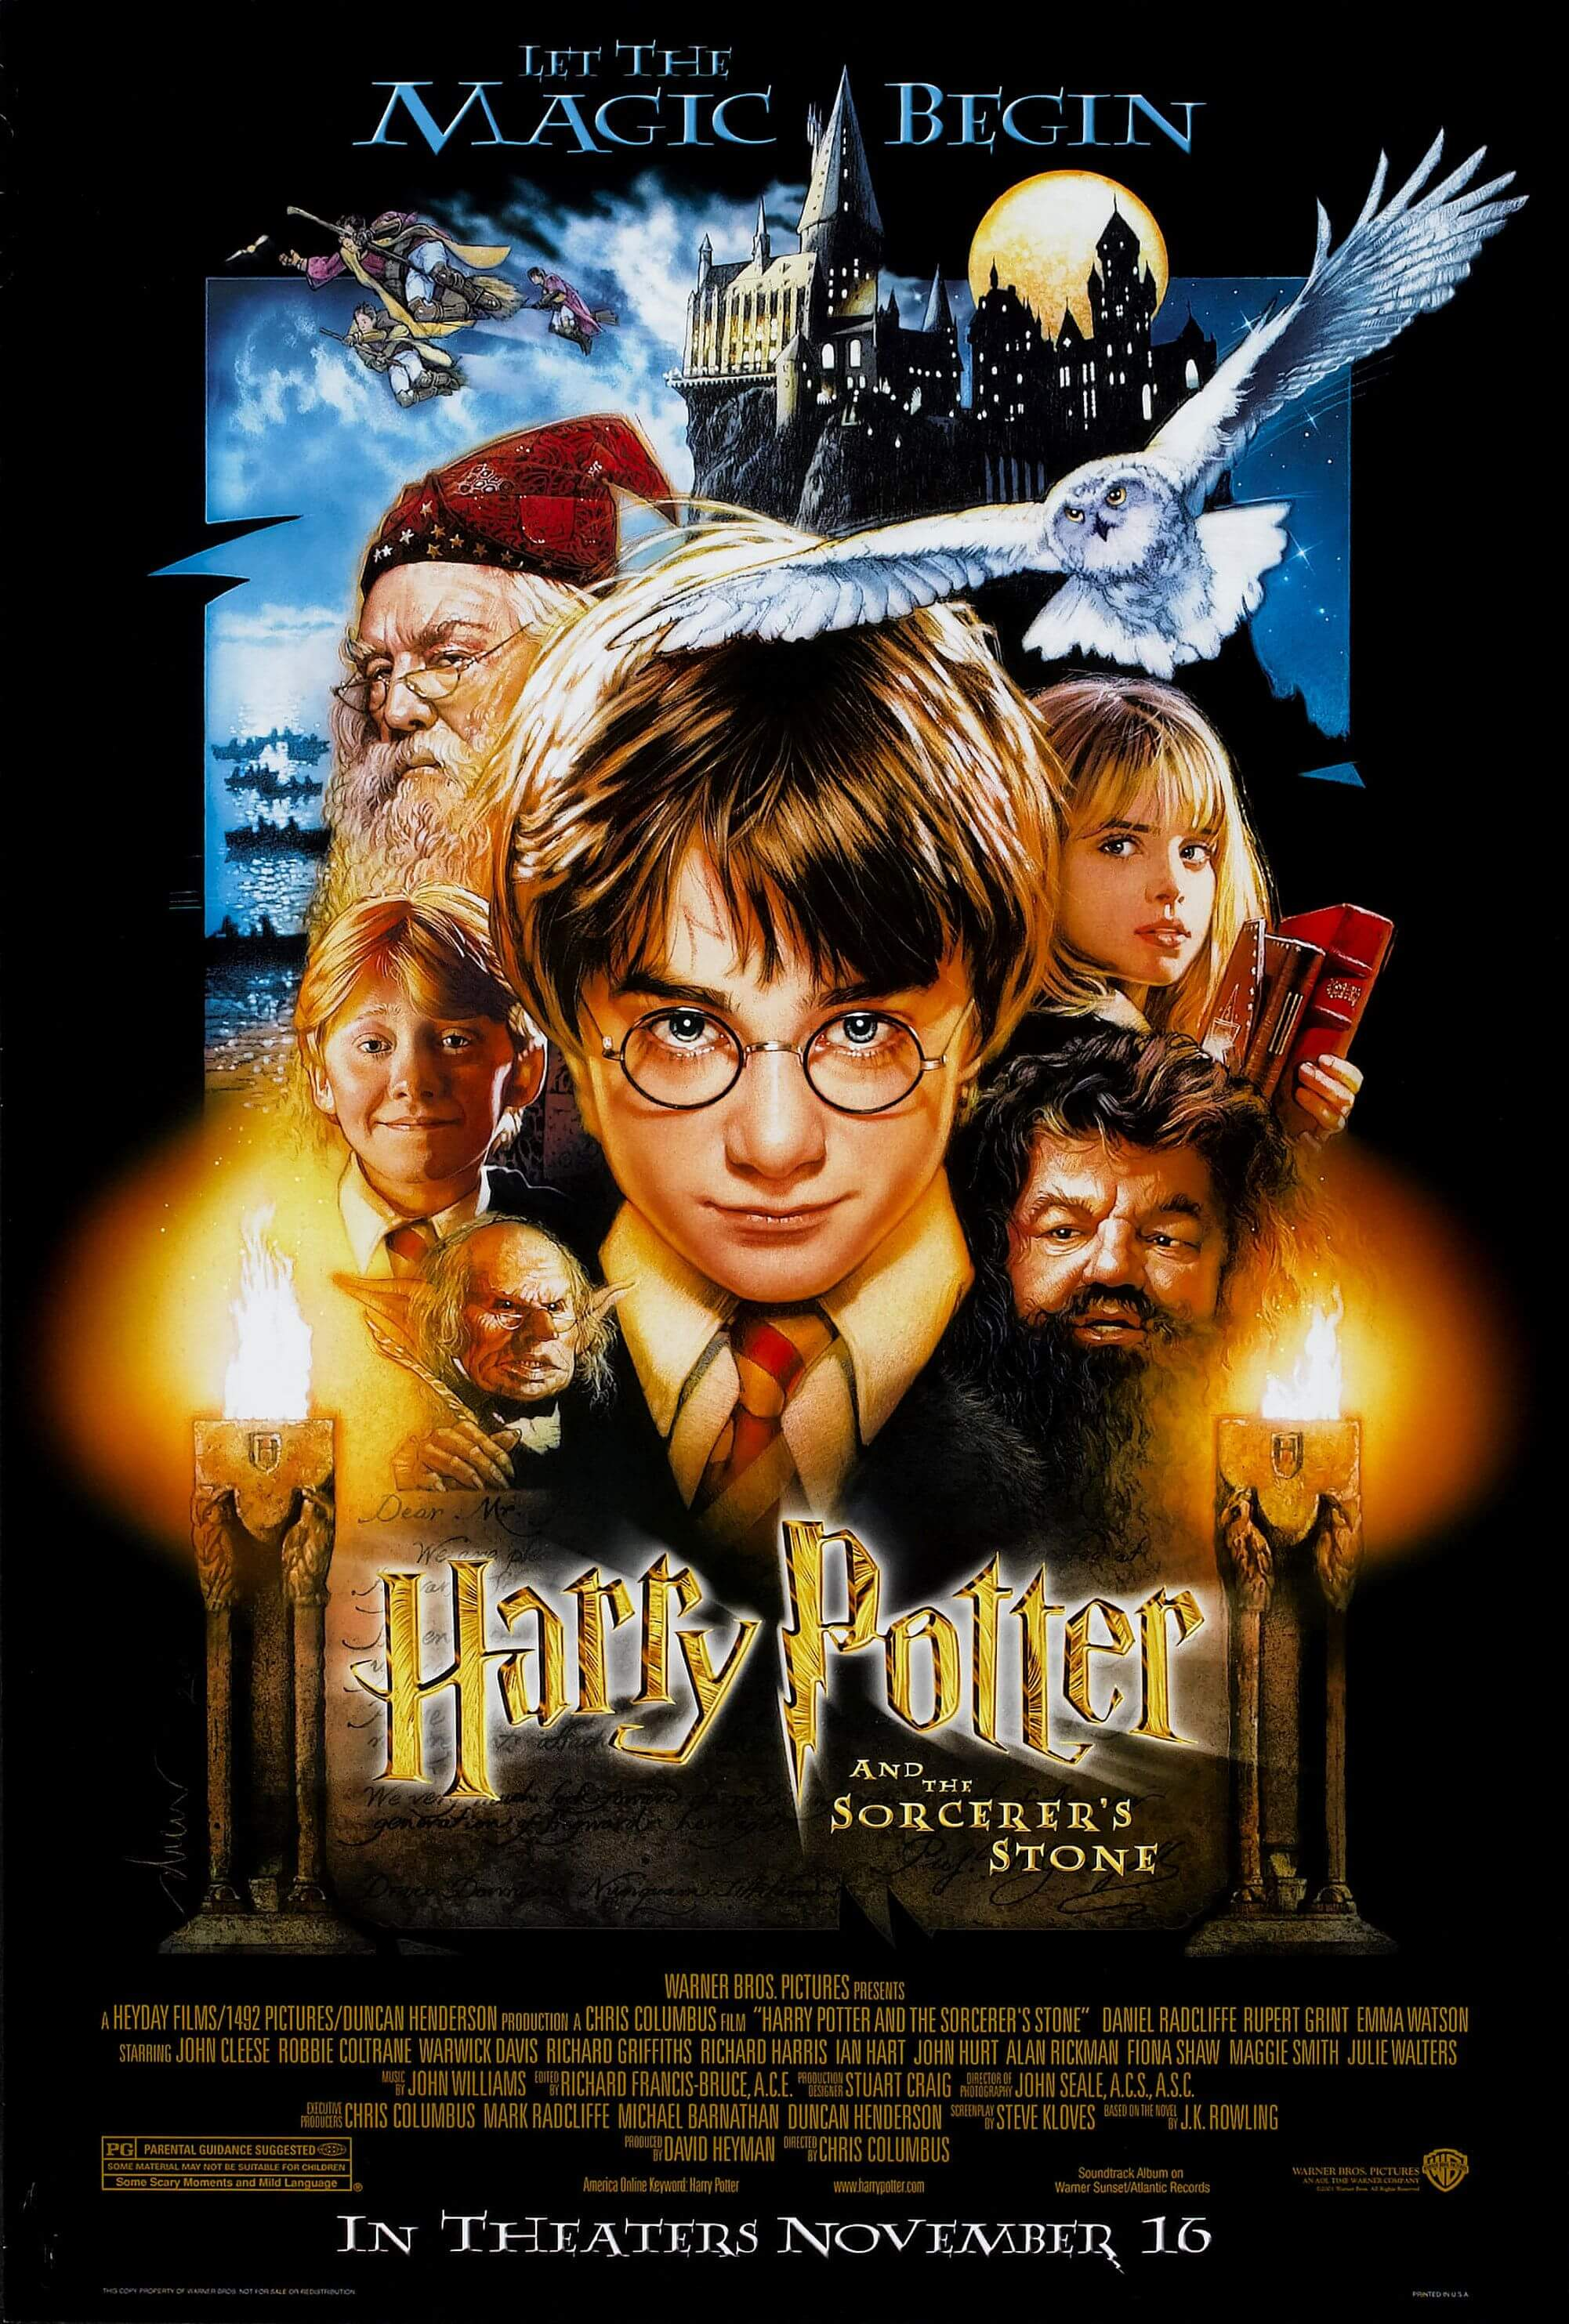 HARRY POTTER AND THE SORCERER'S STONE halloween movie